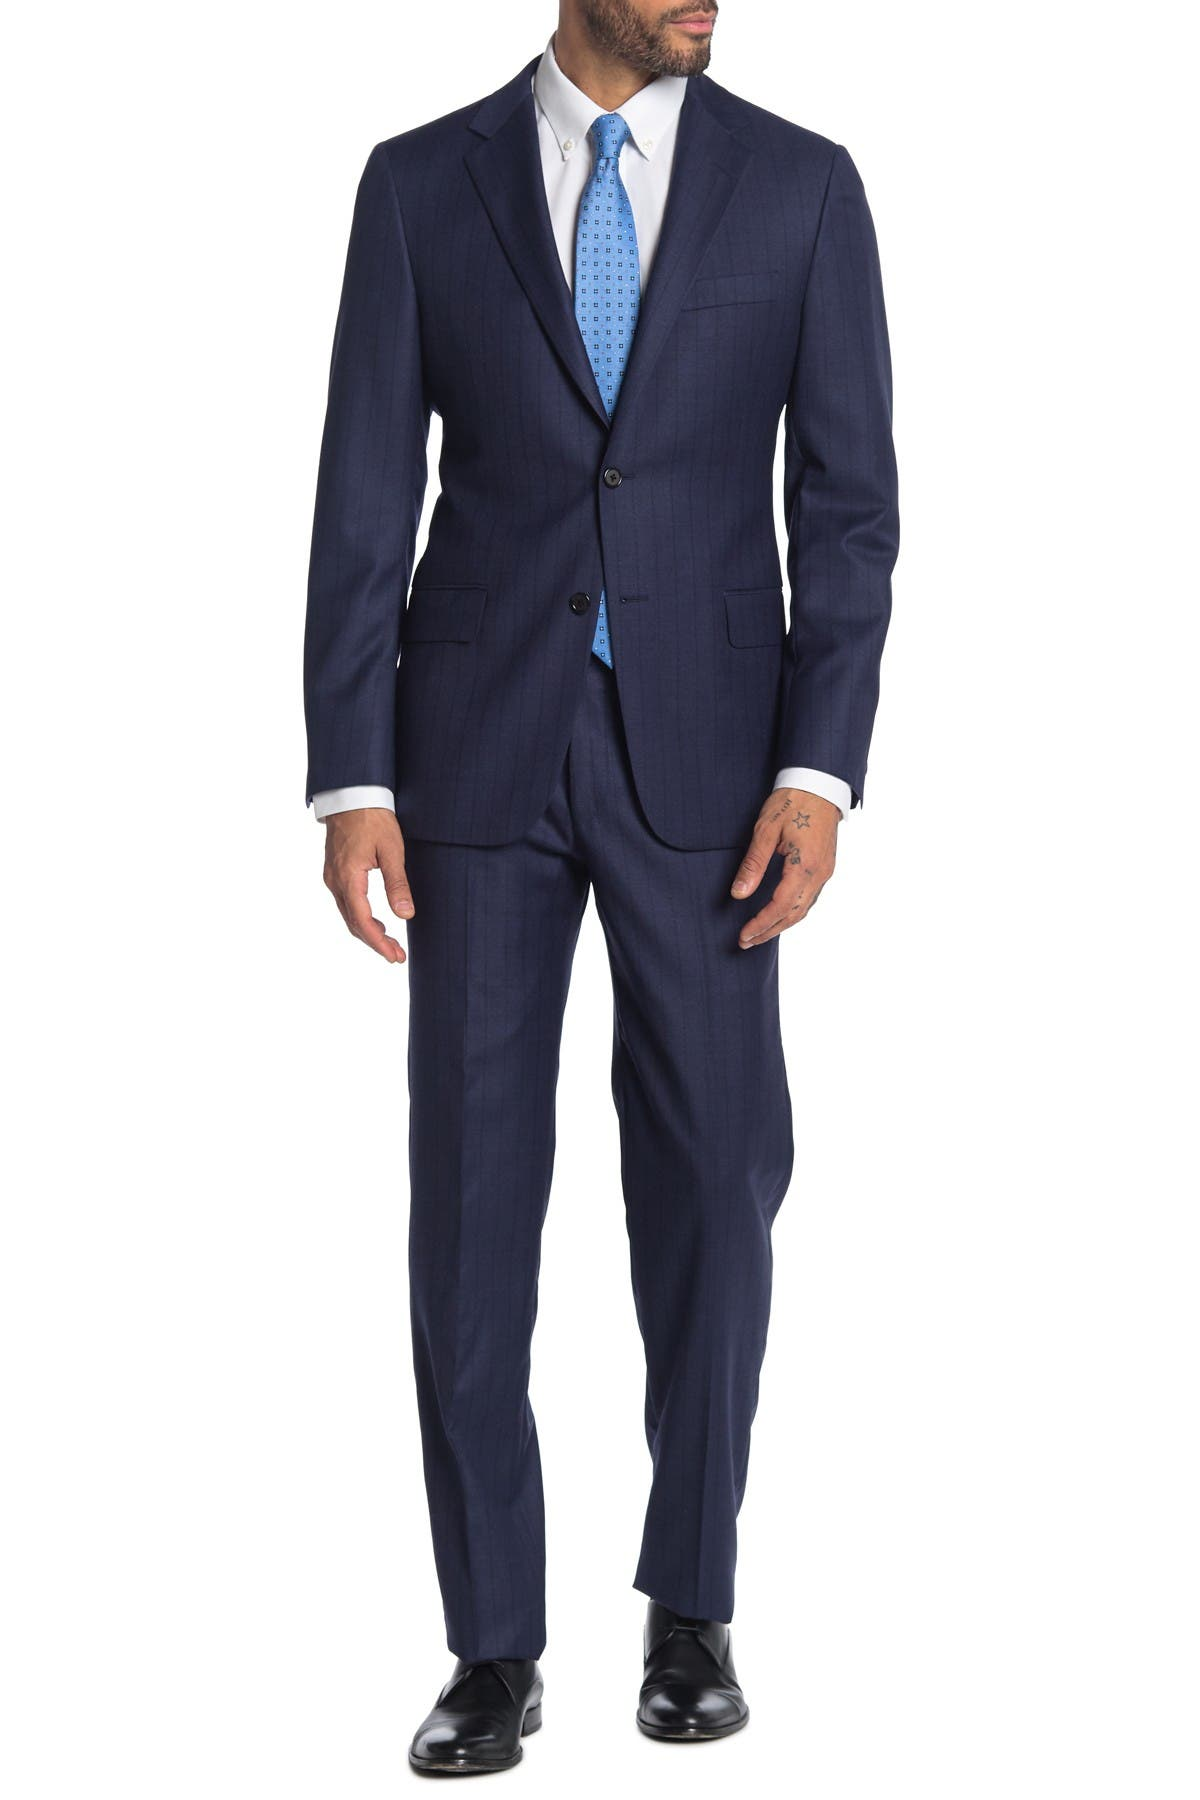 Image of Hickey Freeman Navy Stripe Two Button Notch Lapel Wool Classic Fit Suit